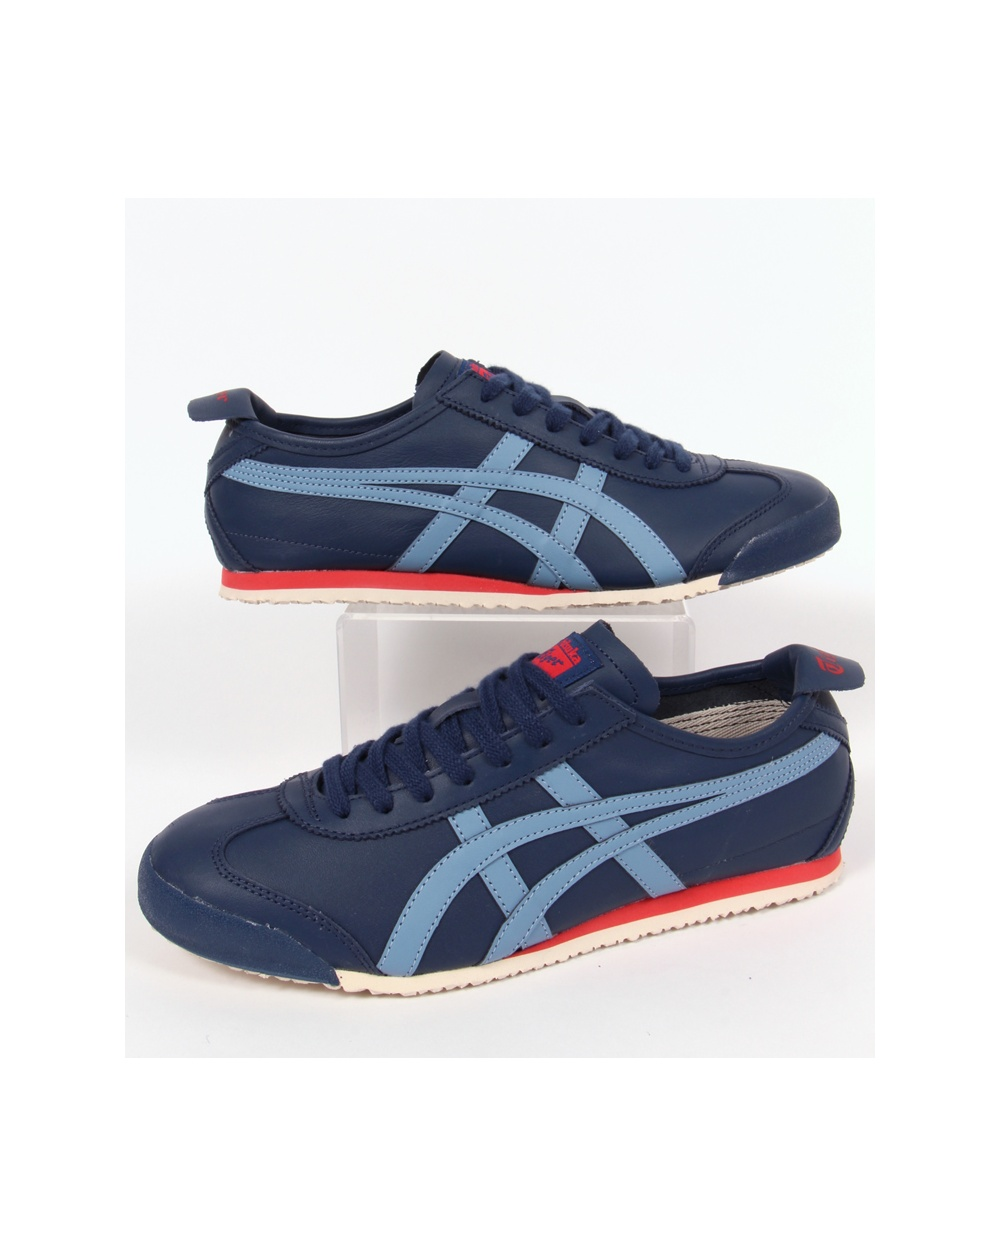 competitive price db530 a6c97 Onitsuka Tiger Mexico 66 Trainers Poseidon Blue/vintage Blue